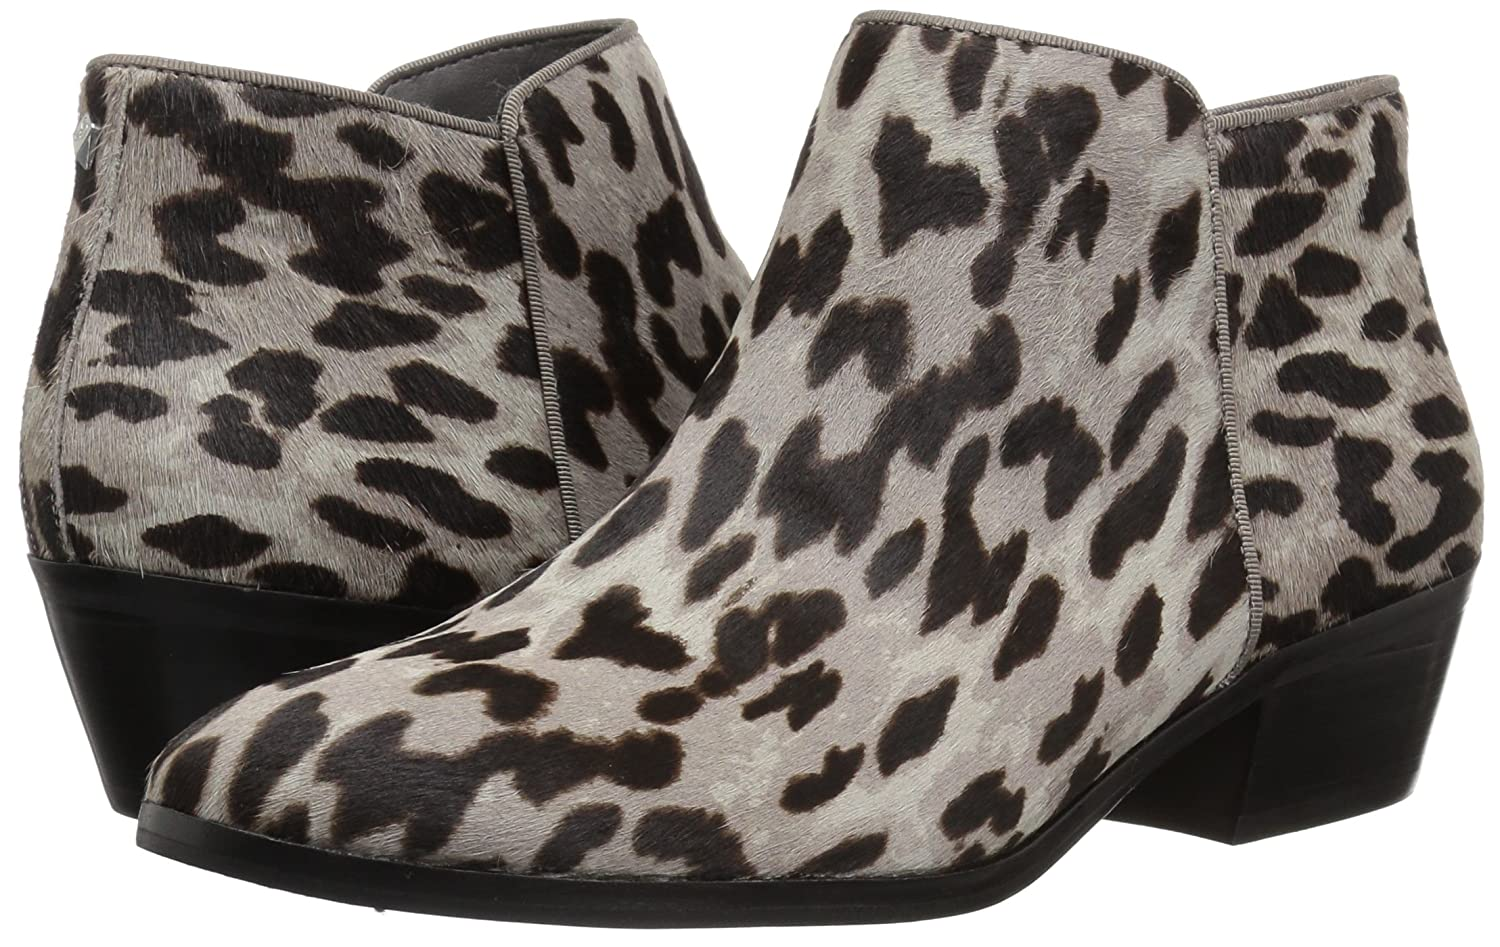 Sam Edelman Women's Petty US|Grey Ankle Boot B07BQYZ38Y 8.5 W US|Grey Petty Leopard 8119d3